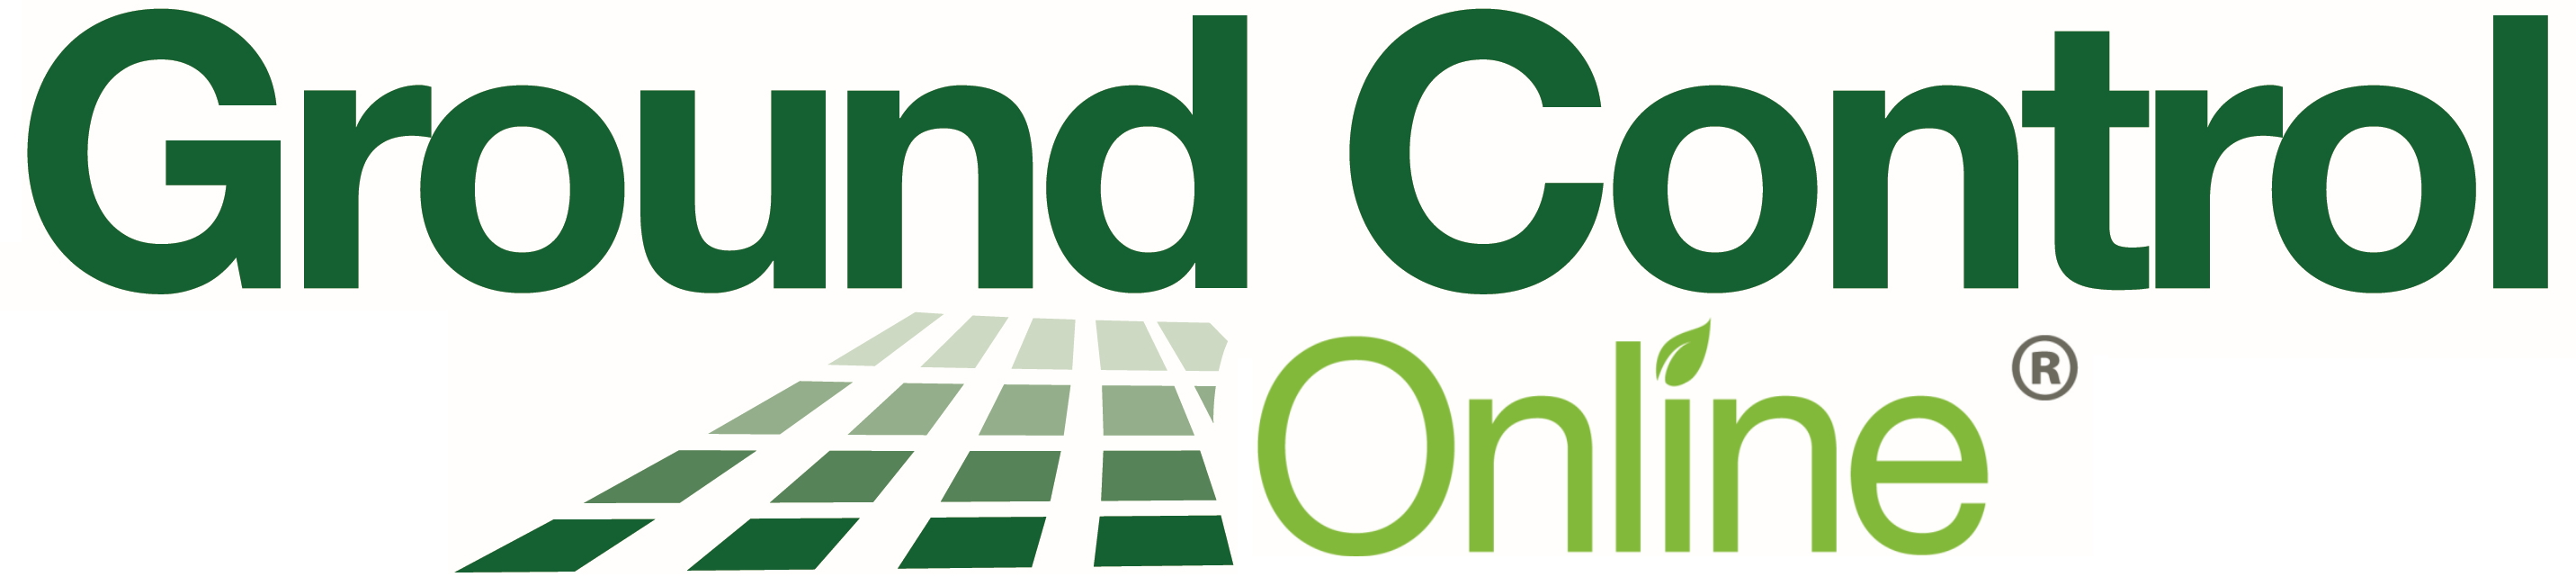 Ground Control Online. Green logo with graphic of green crop rows.